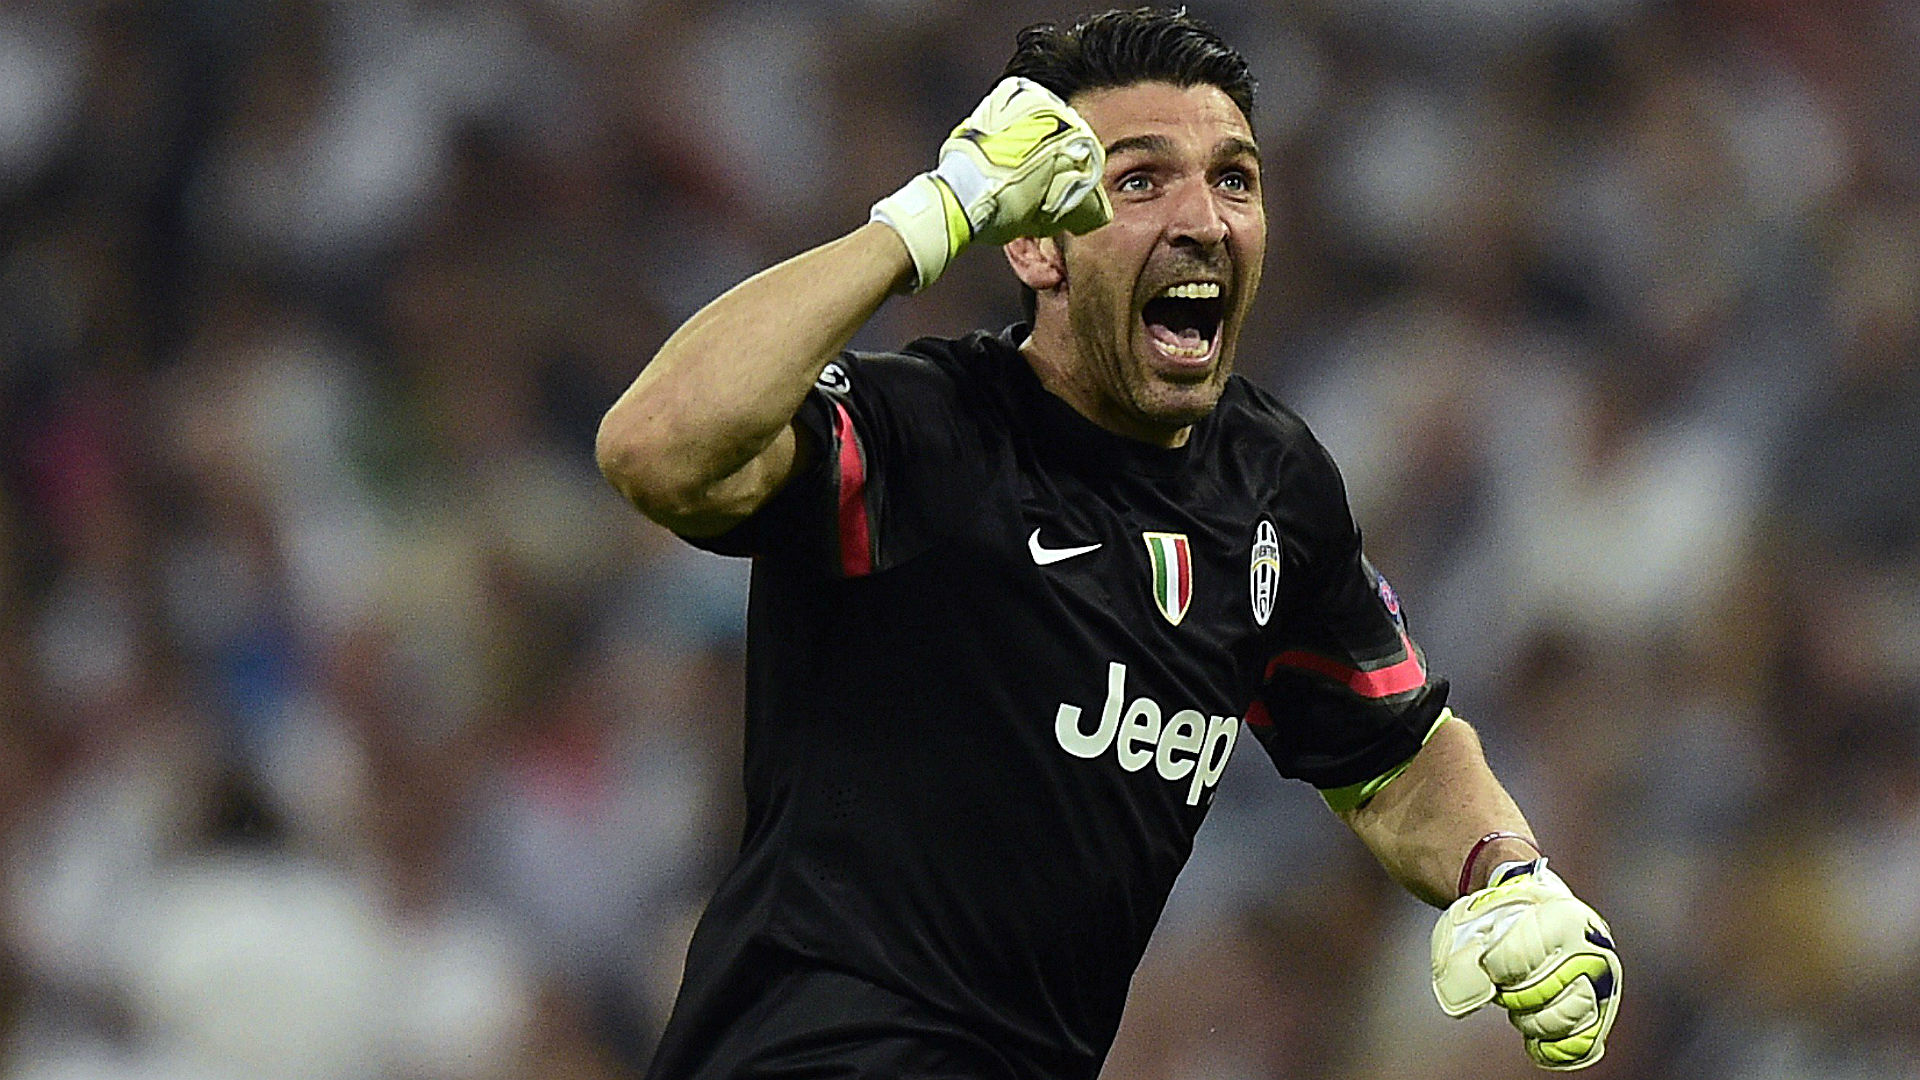 Juventus big underdogs vs. Barcelona in Champions League final